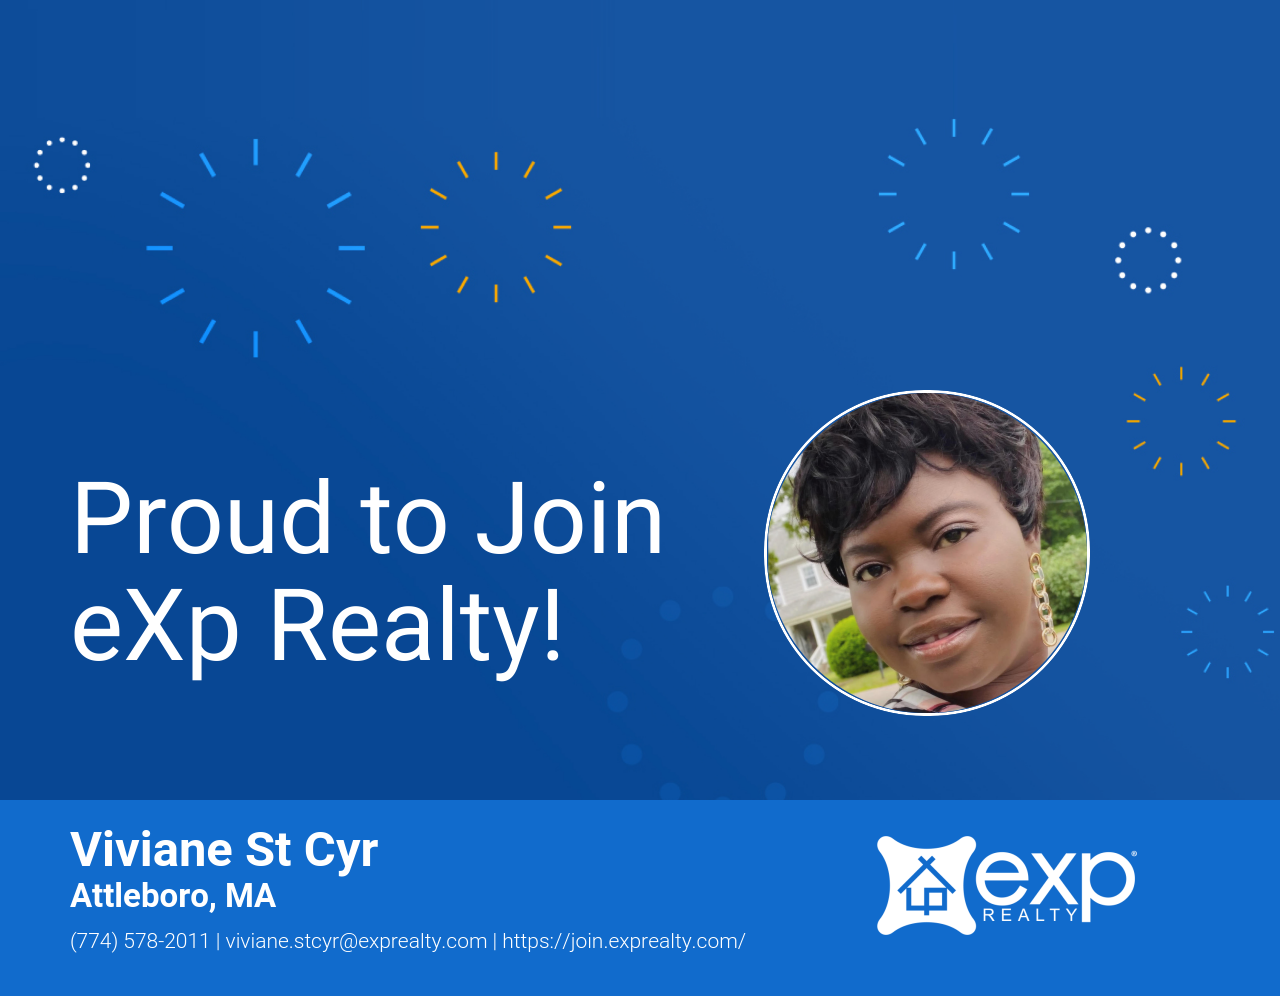 Viviane St Cyr Joined eXp Realty!